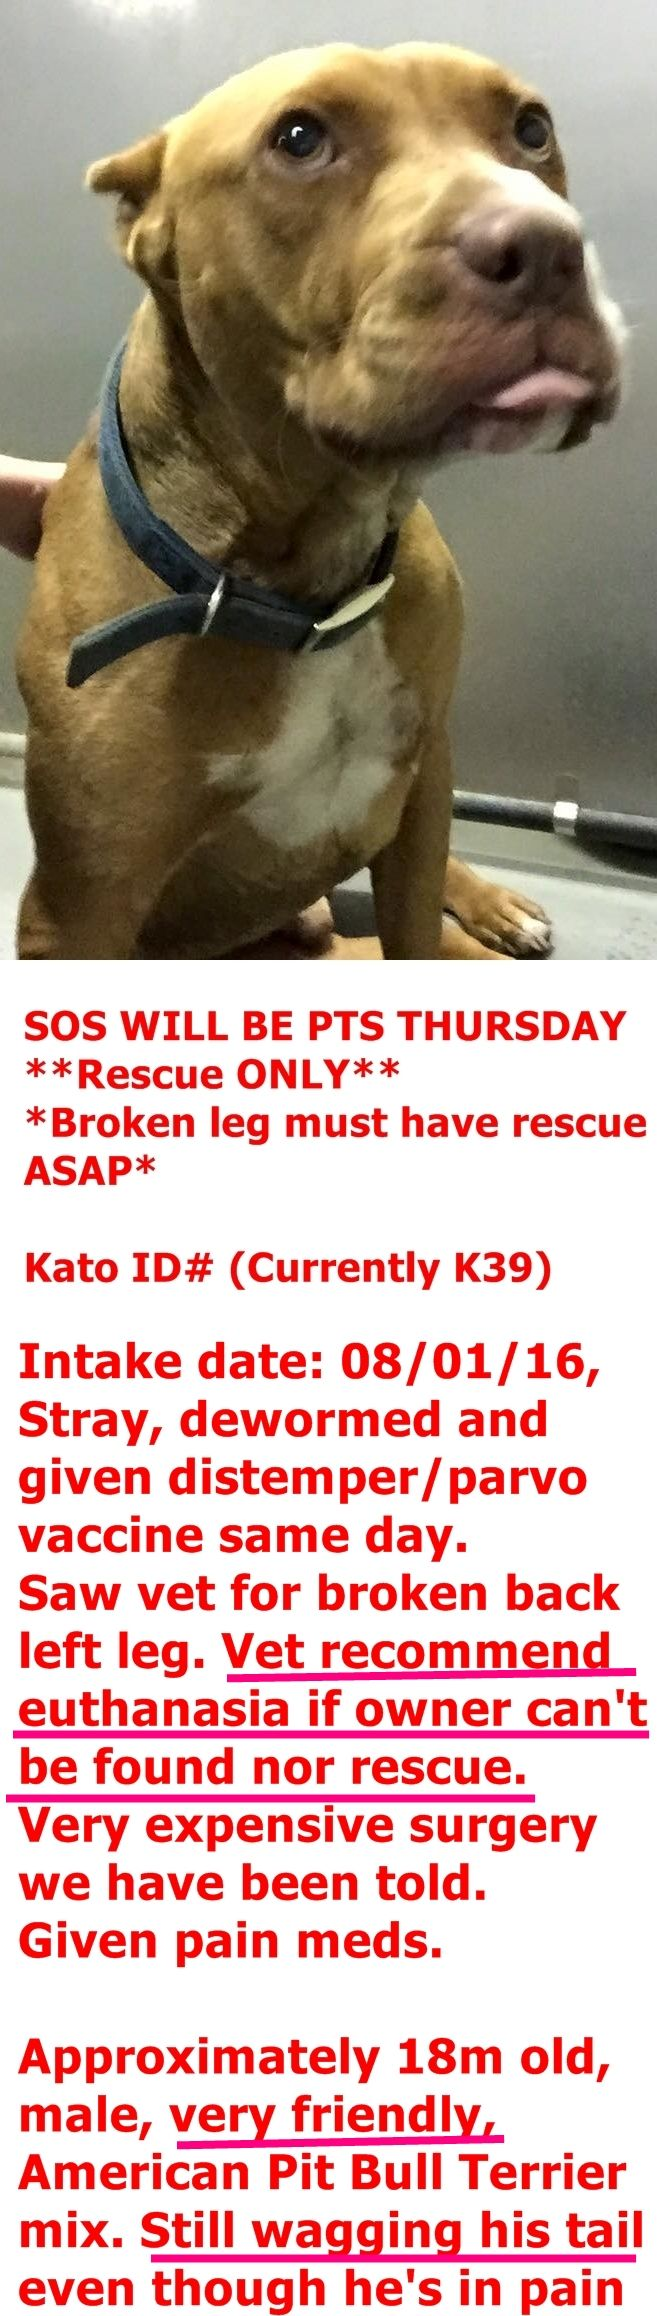 Kato ID# (Currently K39) Columbus county animal shelter: Whiteville nc DogsofccacVolunteers@yahoo.com https://www.facebook.com/ccacdogs/photos/a.993638314028225.1073741883.258289547563109/1126109474114441/?type=3&theater